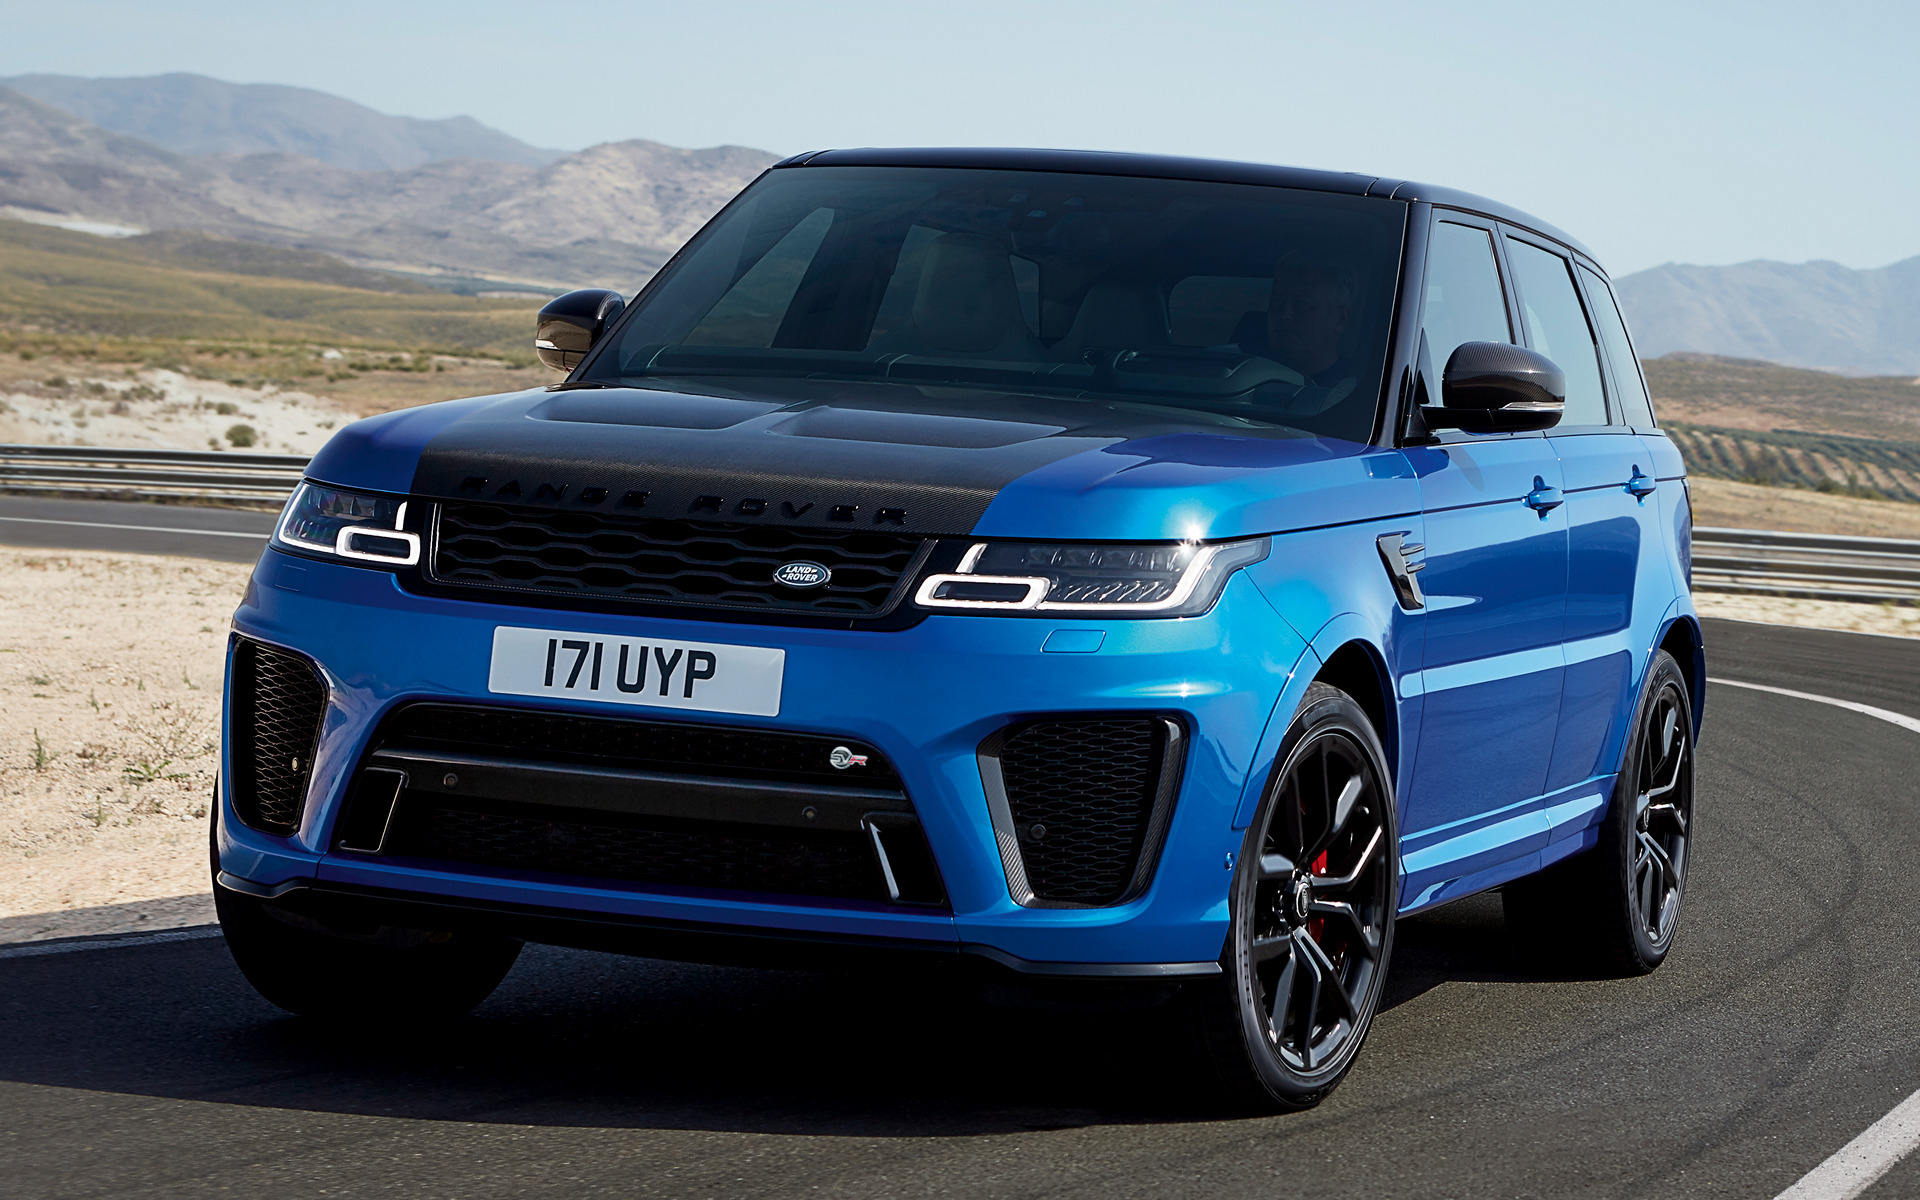 2017 Range Rover Sport Svr Wallpapers And Hd Images